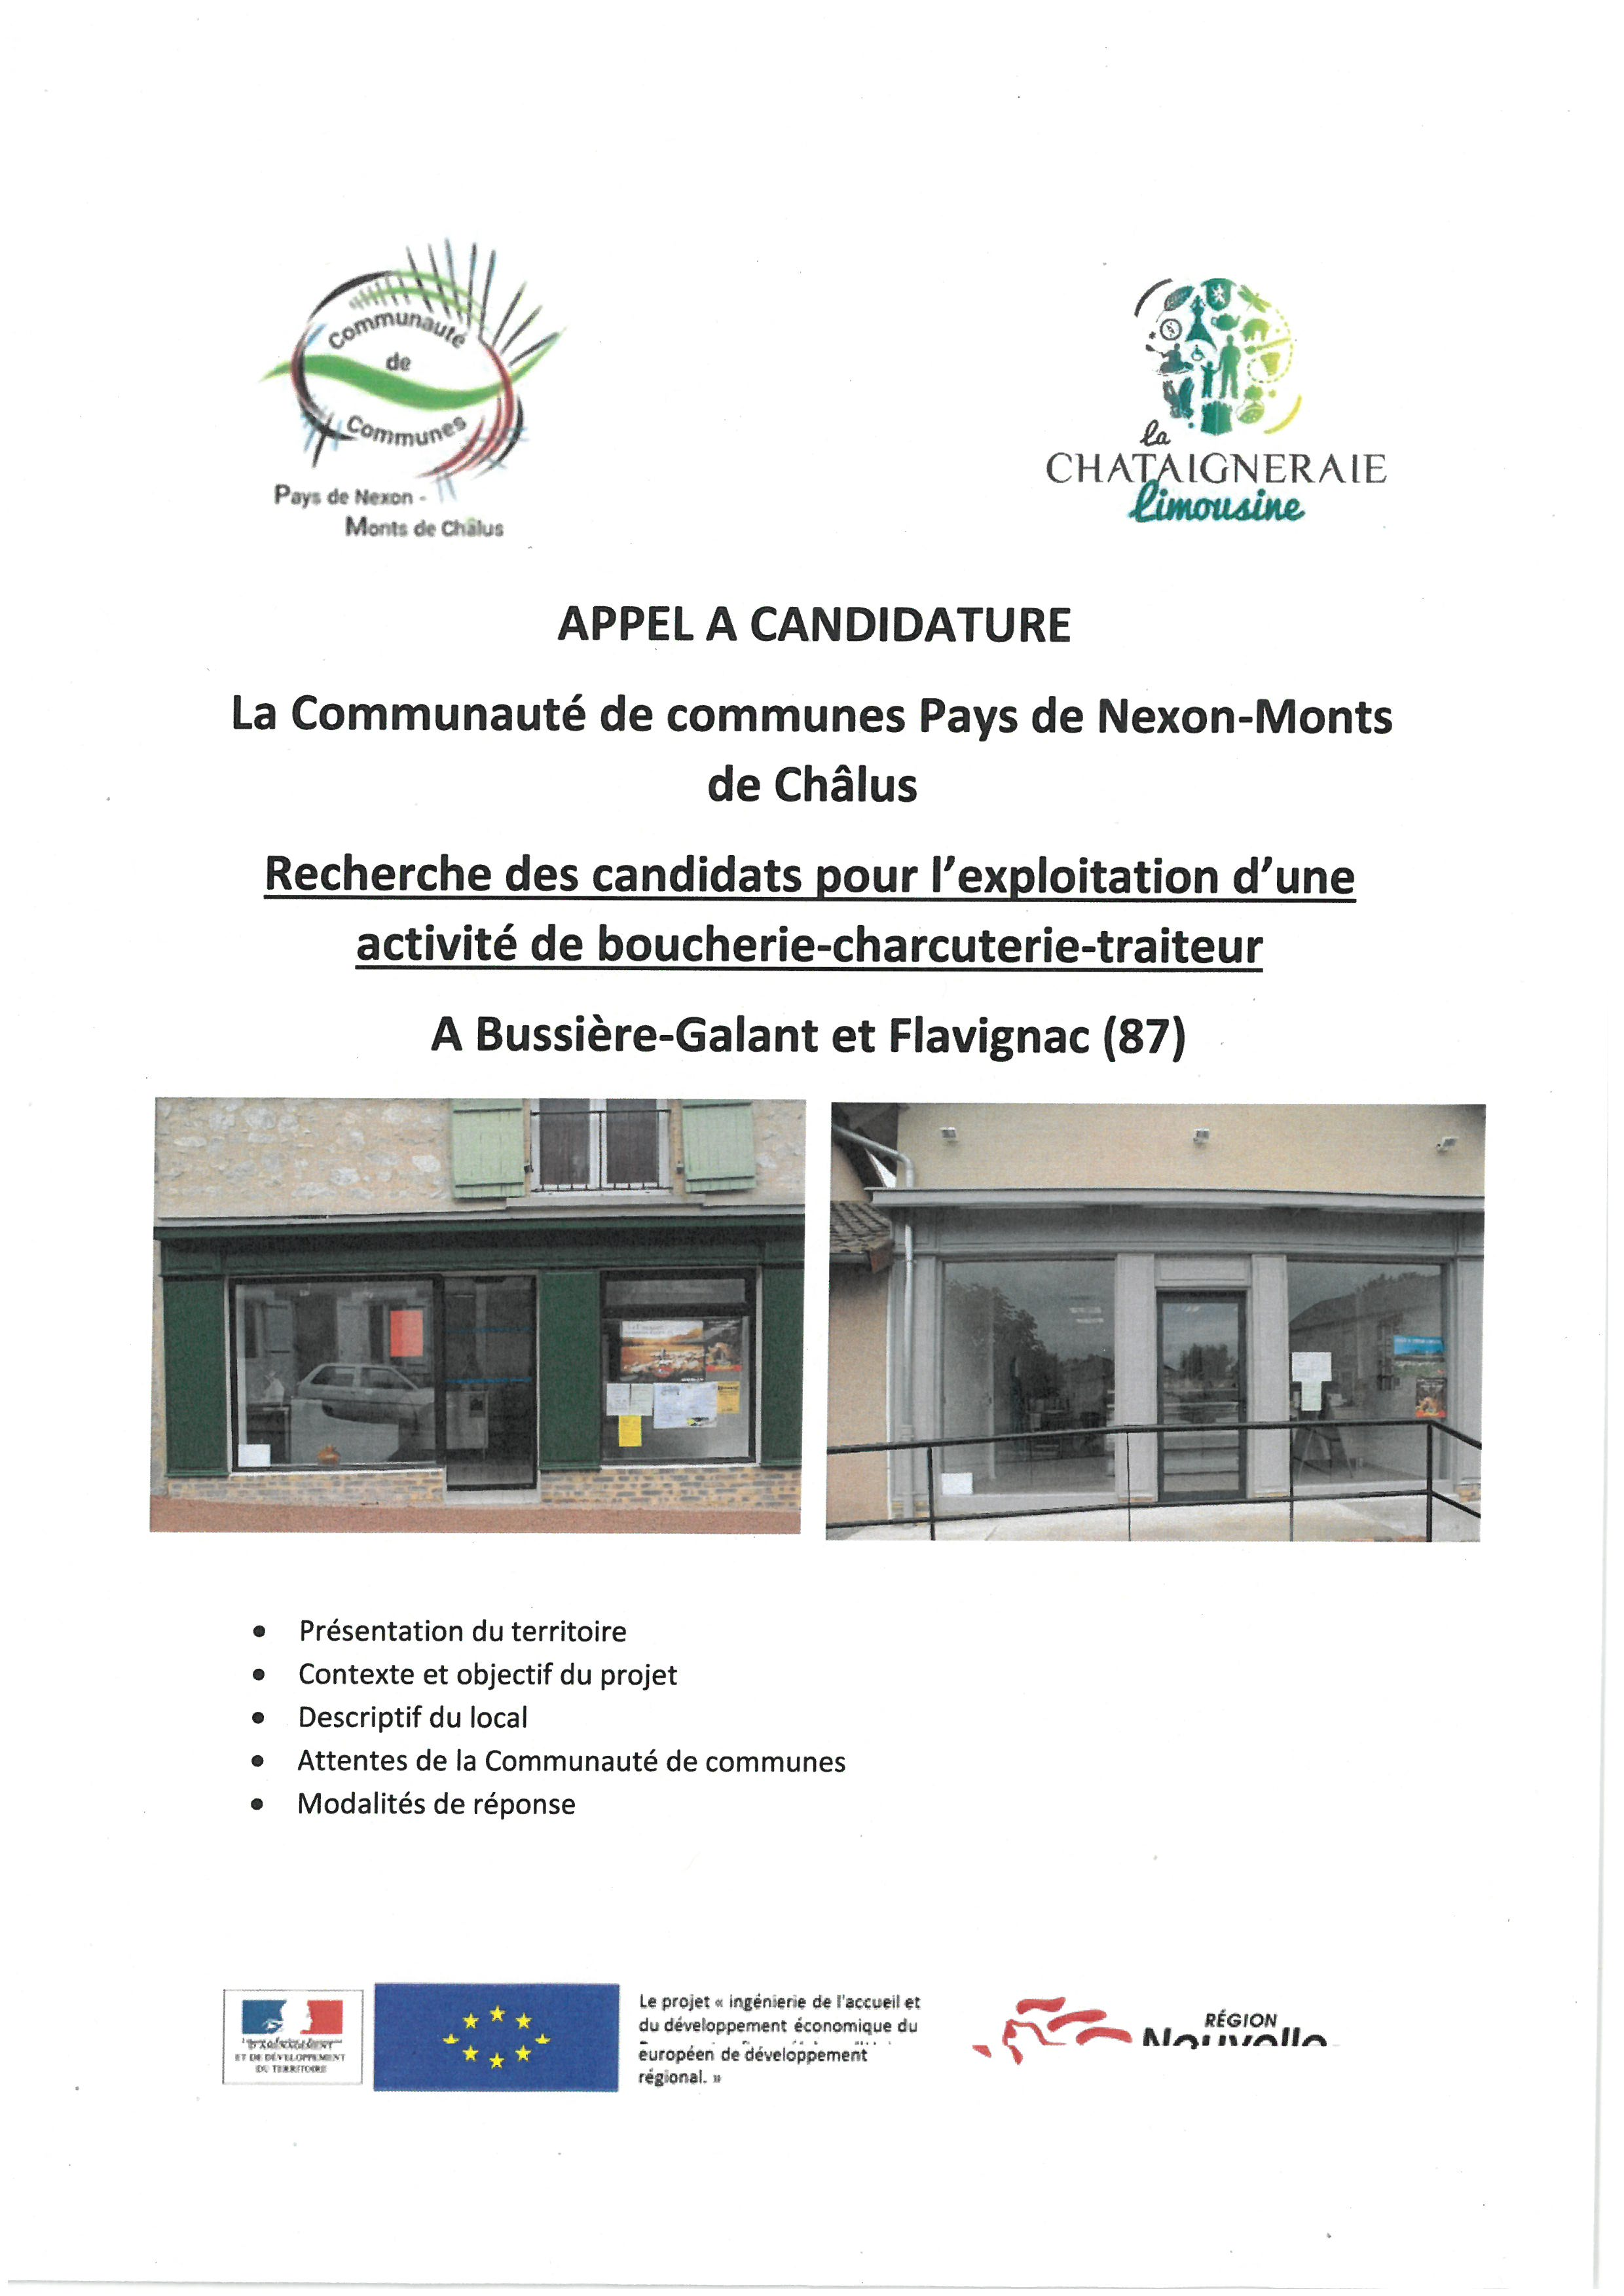 appel-a-candidature